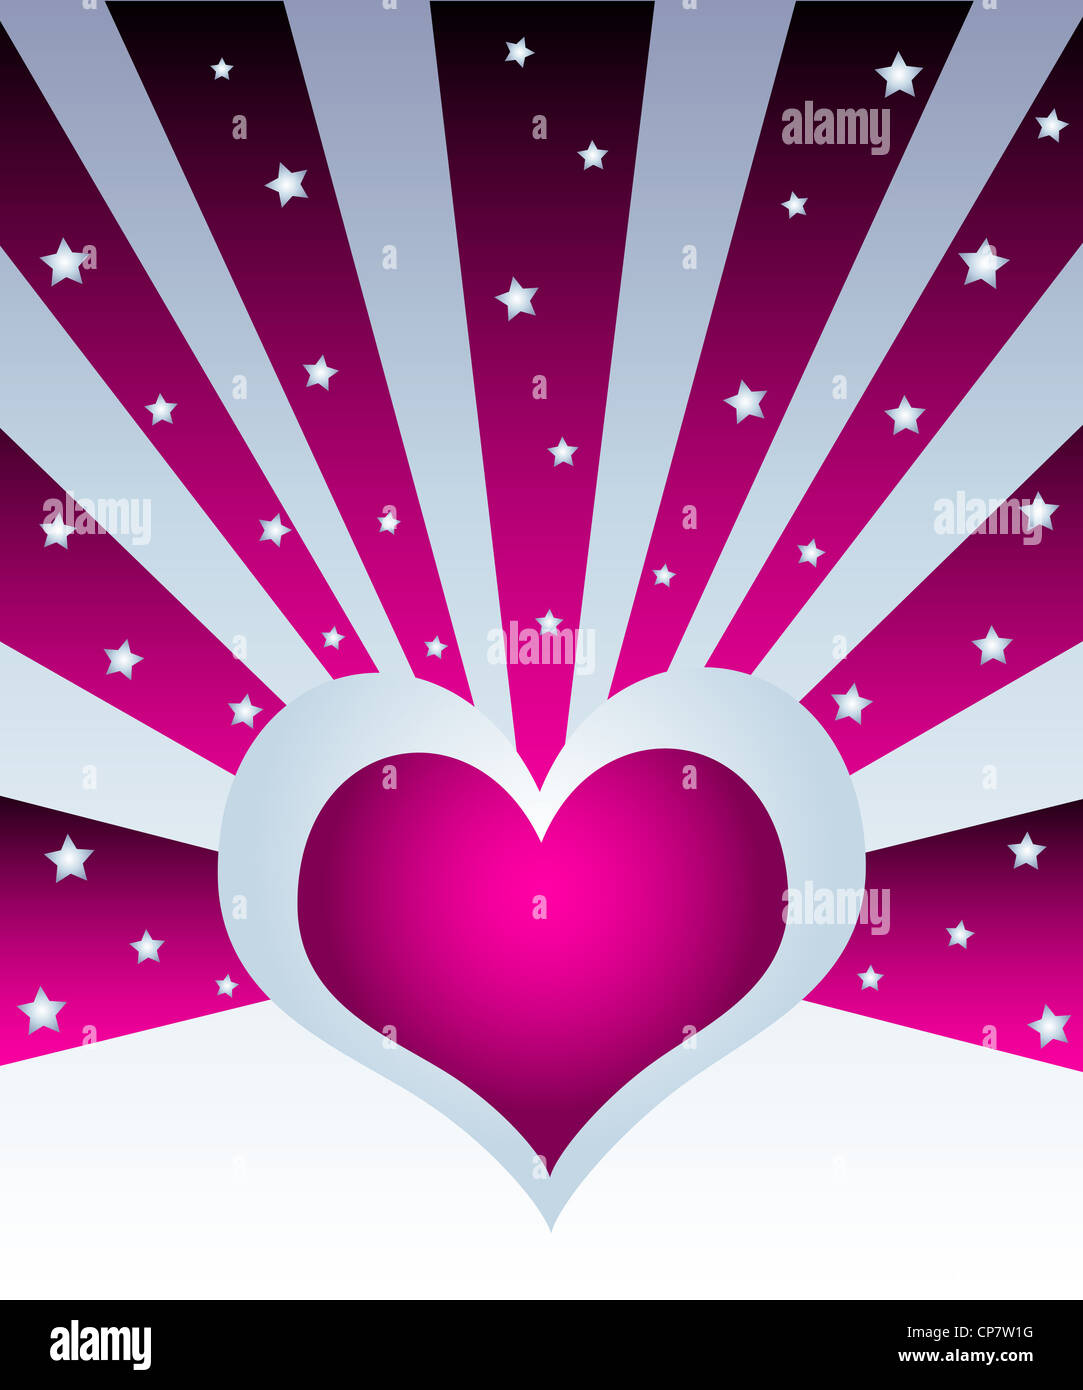 Heart with rays and stars celebration design Stock Photo